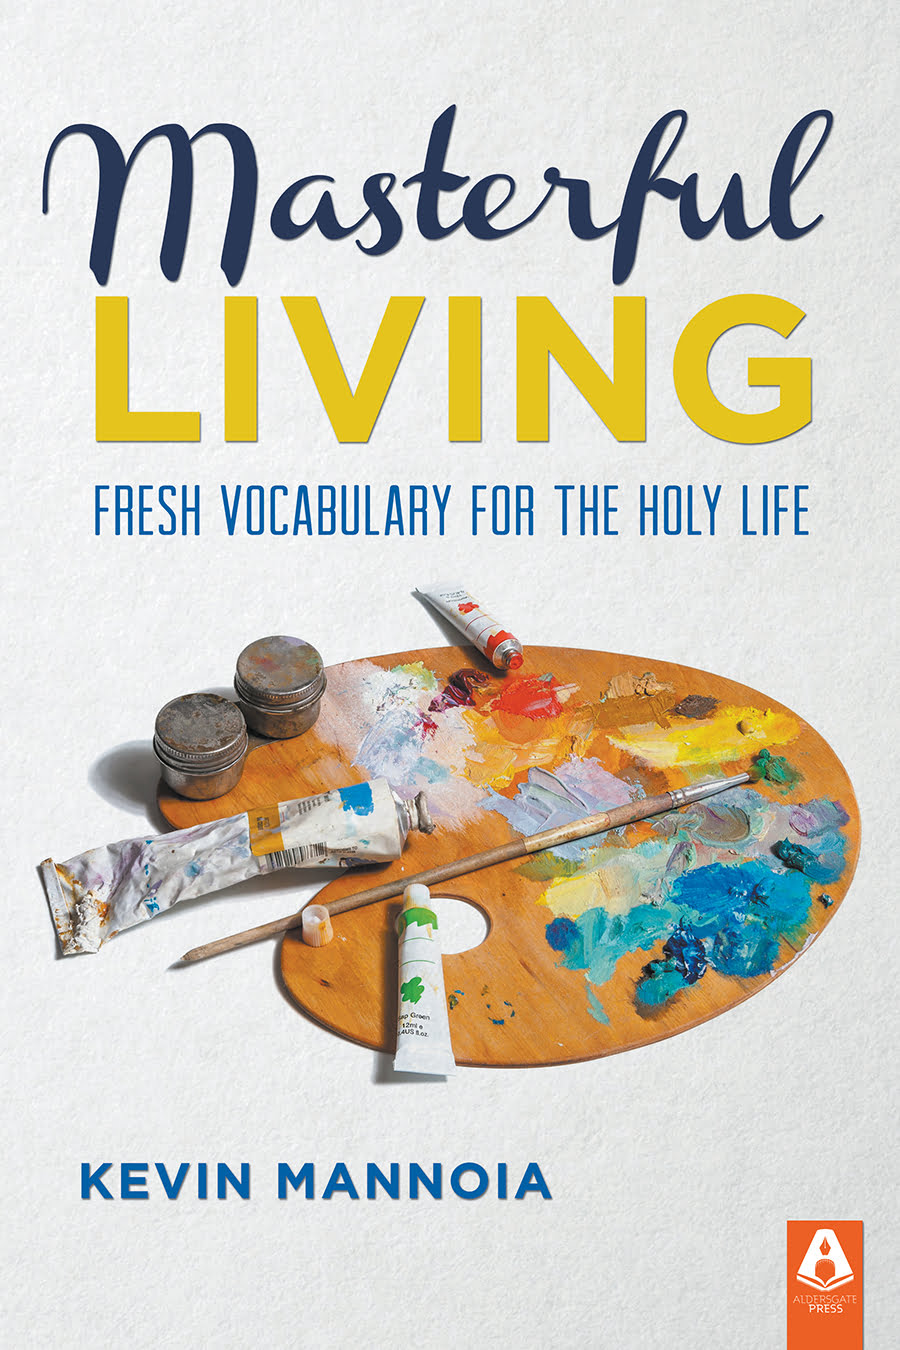 Masterful Living: Fresh Vocabulary for the Holy Life